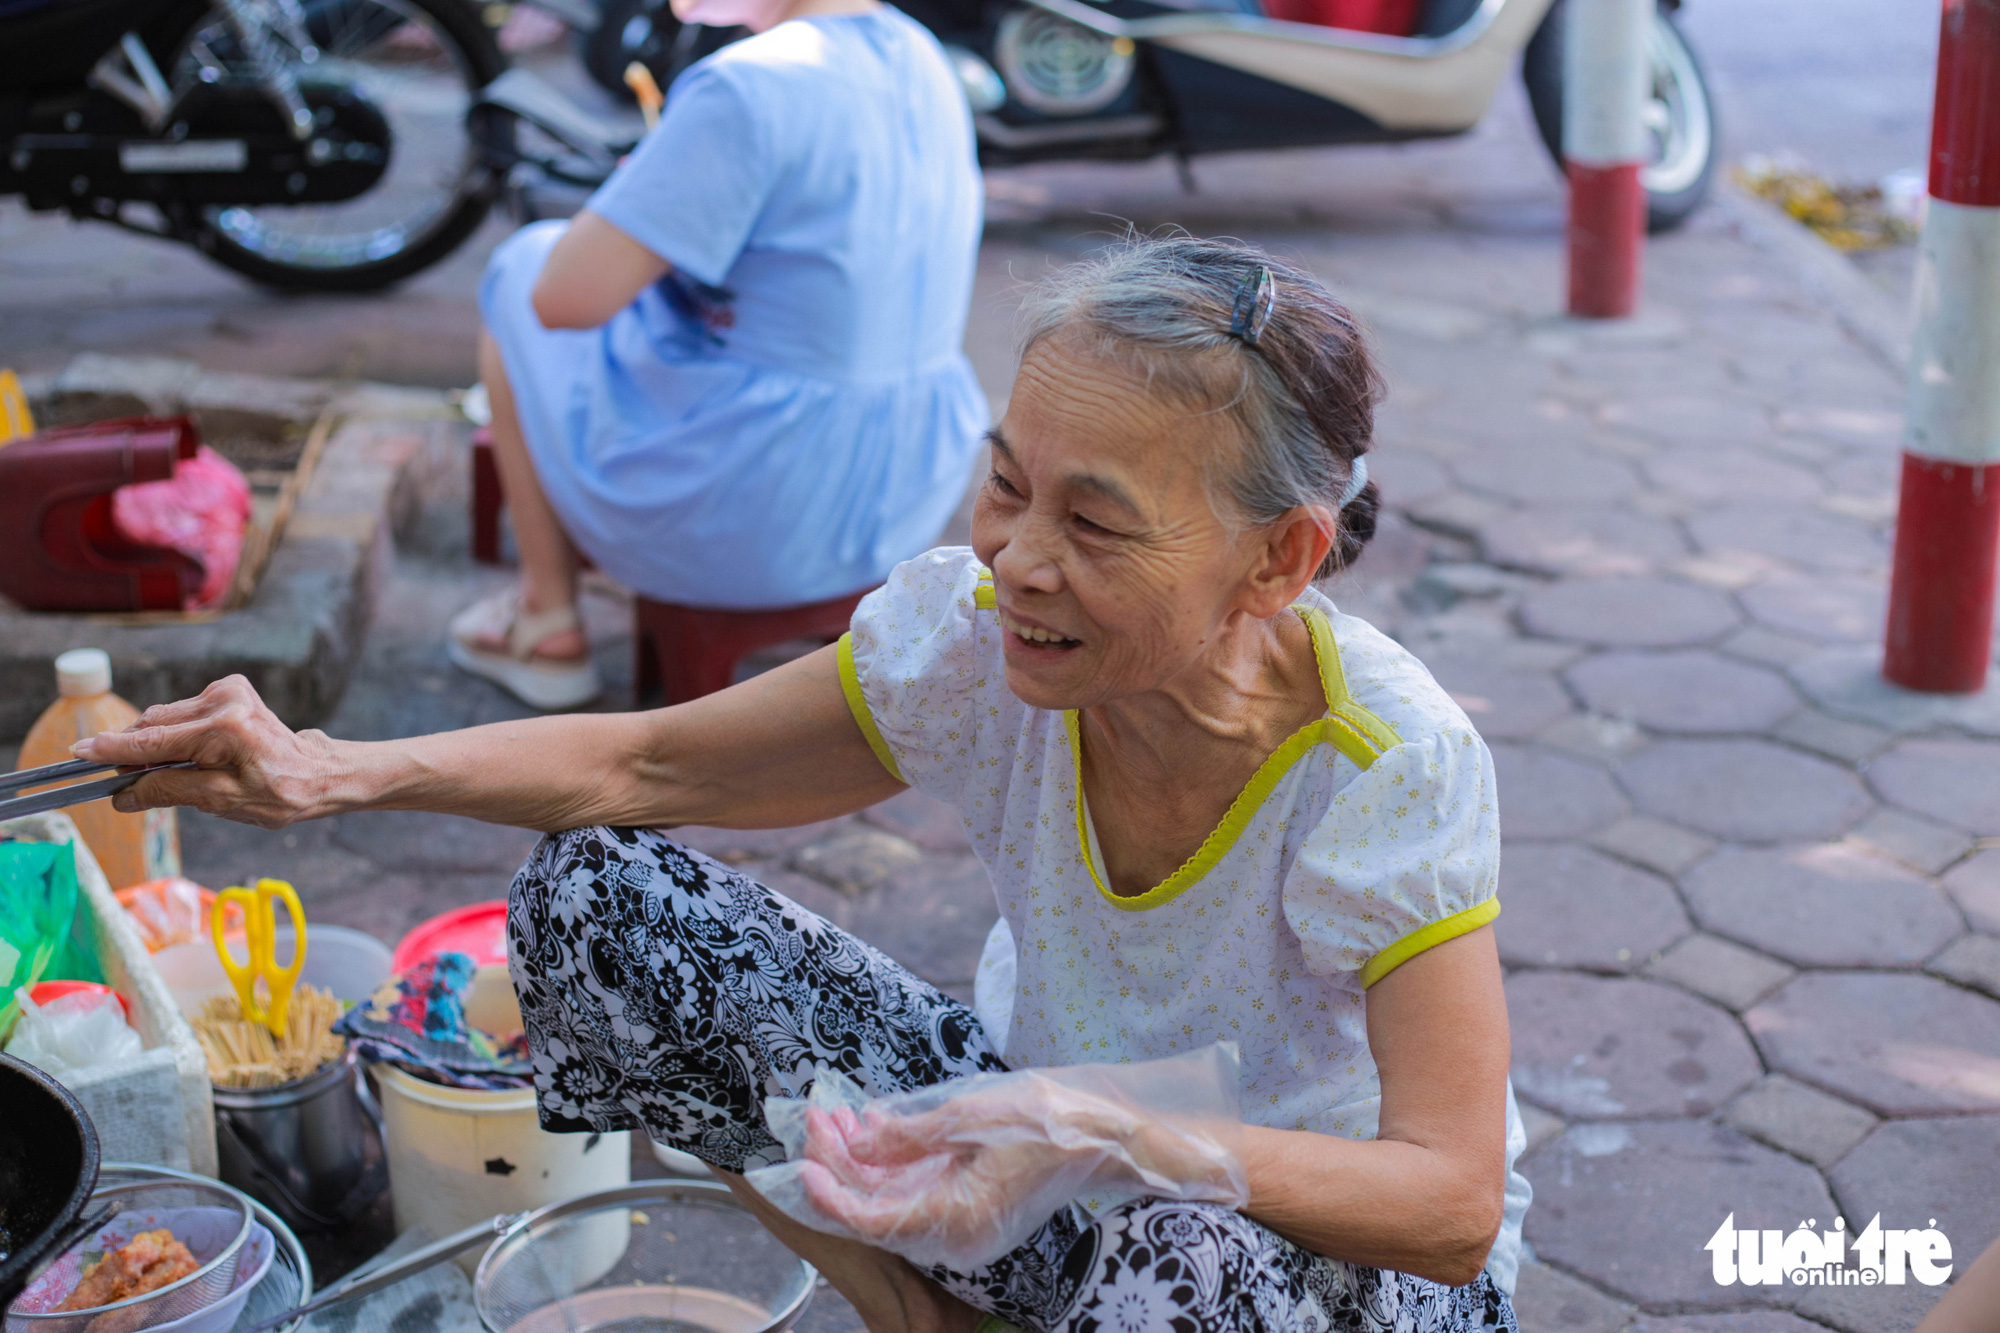 Nguyen Thi Thanh, 80, owner of a street food stall near Thanh Cong Secondary School in Hanoi, prepares food for customers. Photo: Hong Tham / Tuoi Tre